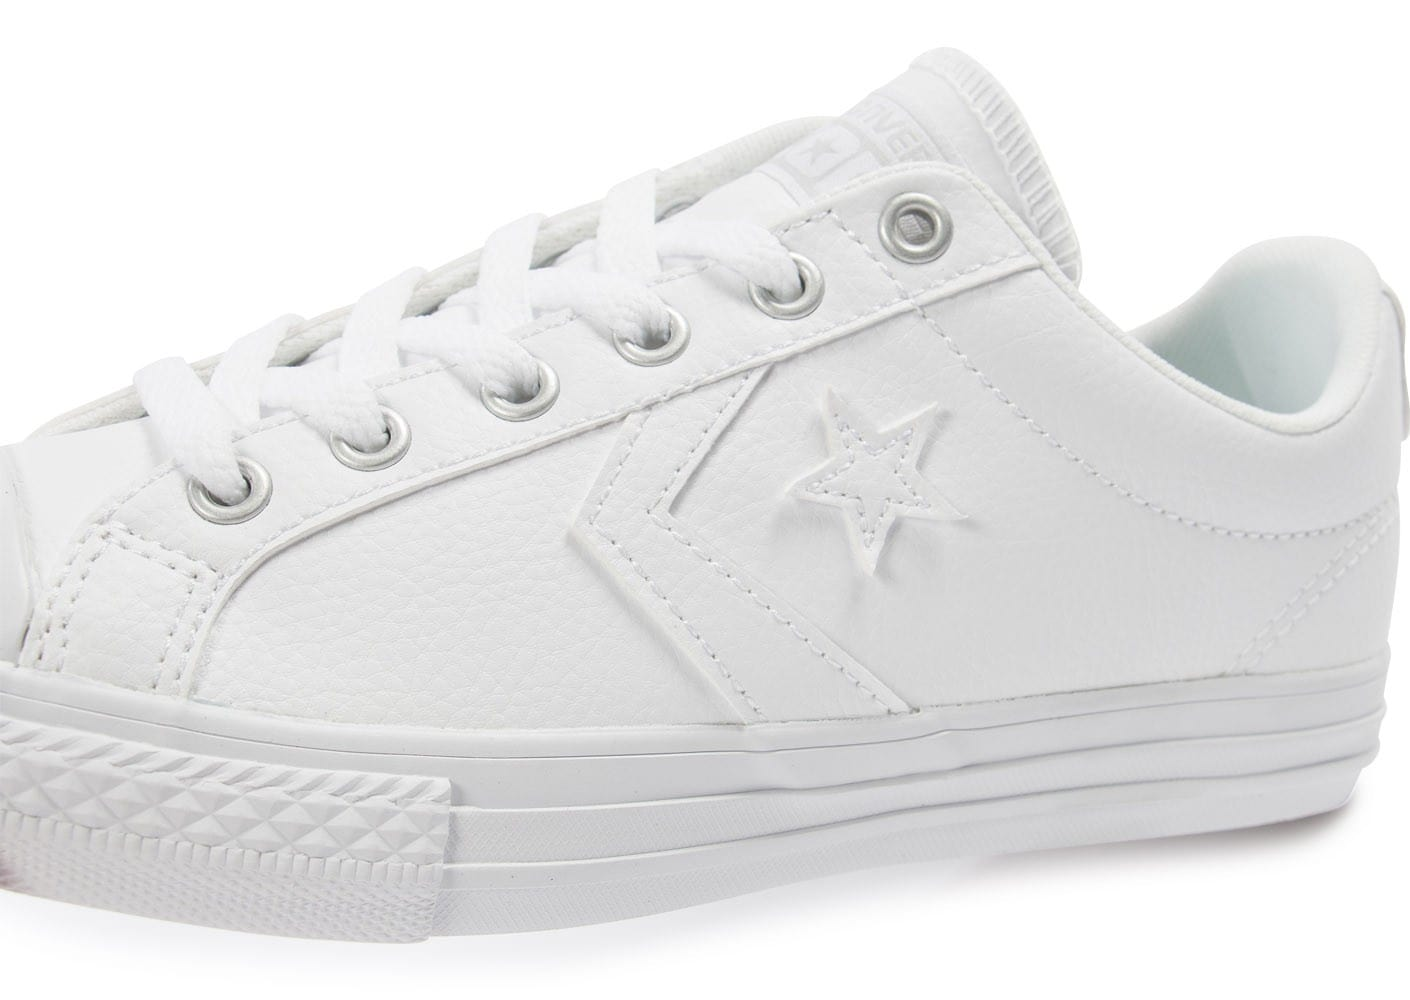 Chaussures Converse Star Player blanches Fashion homme XvfyW5u